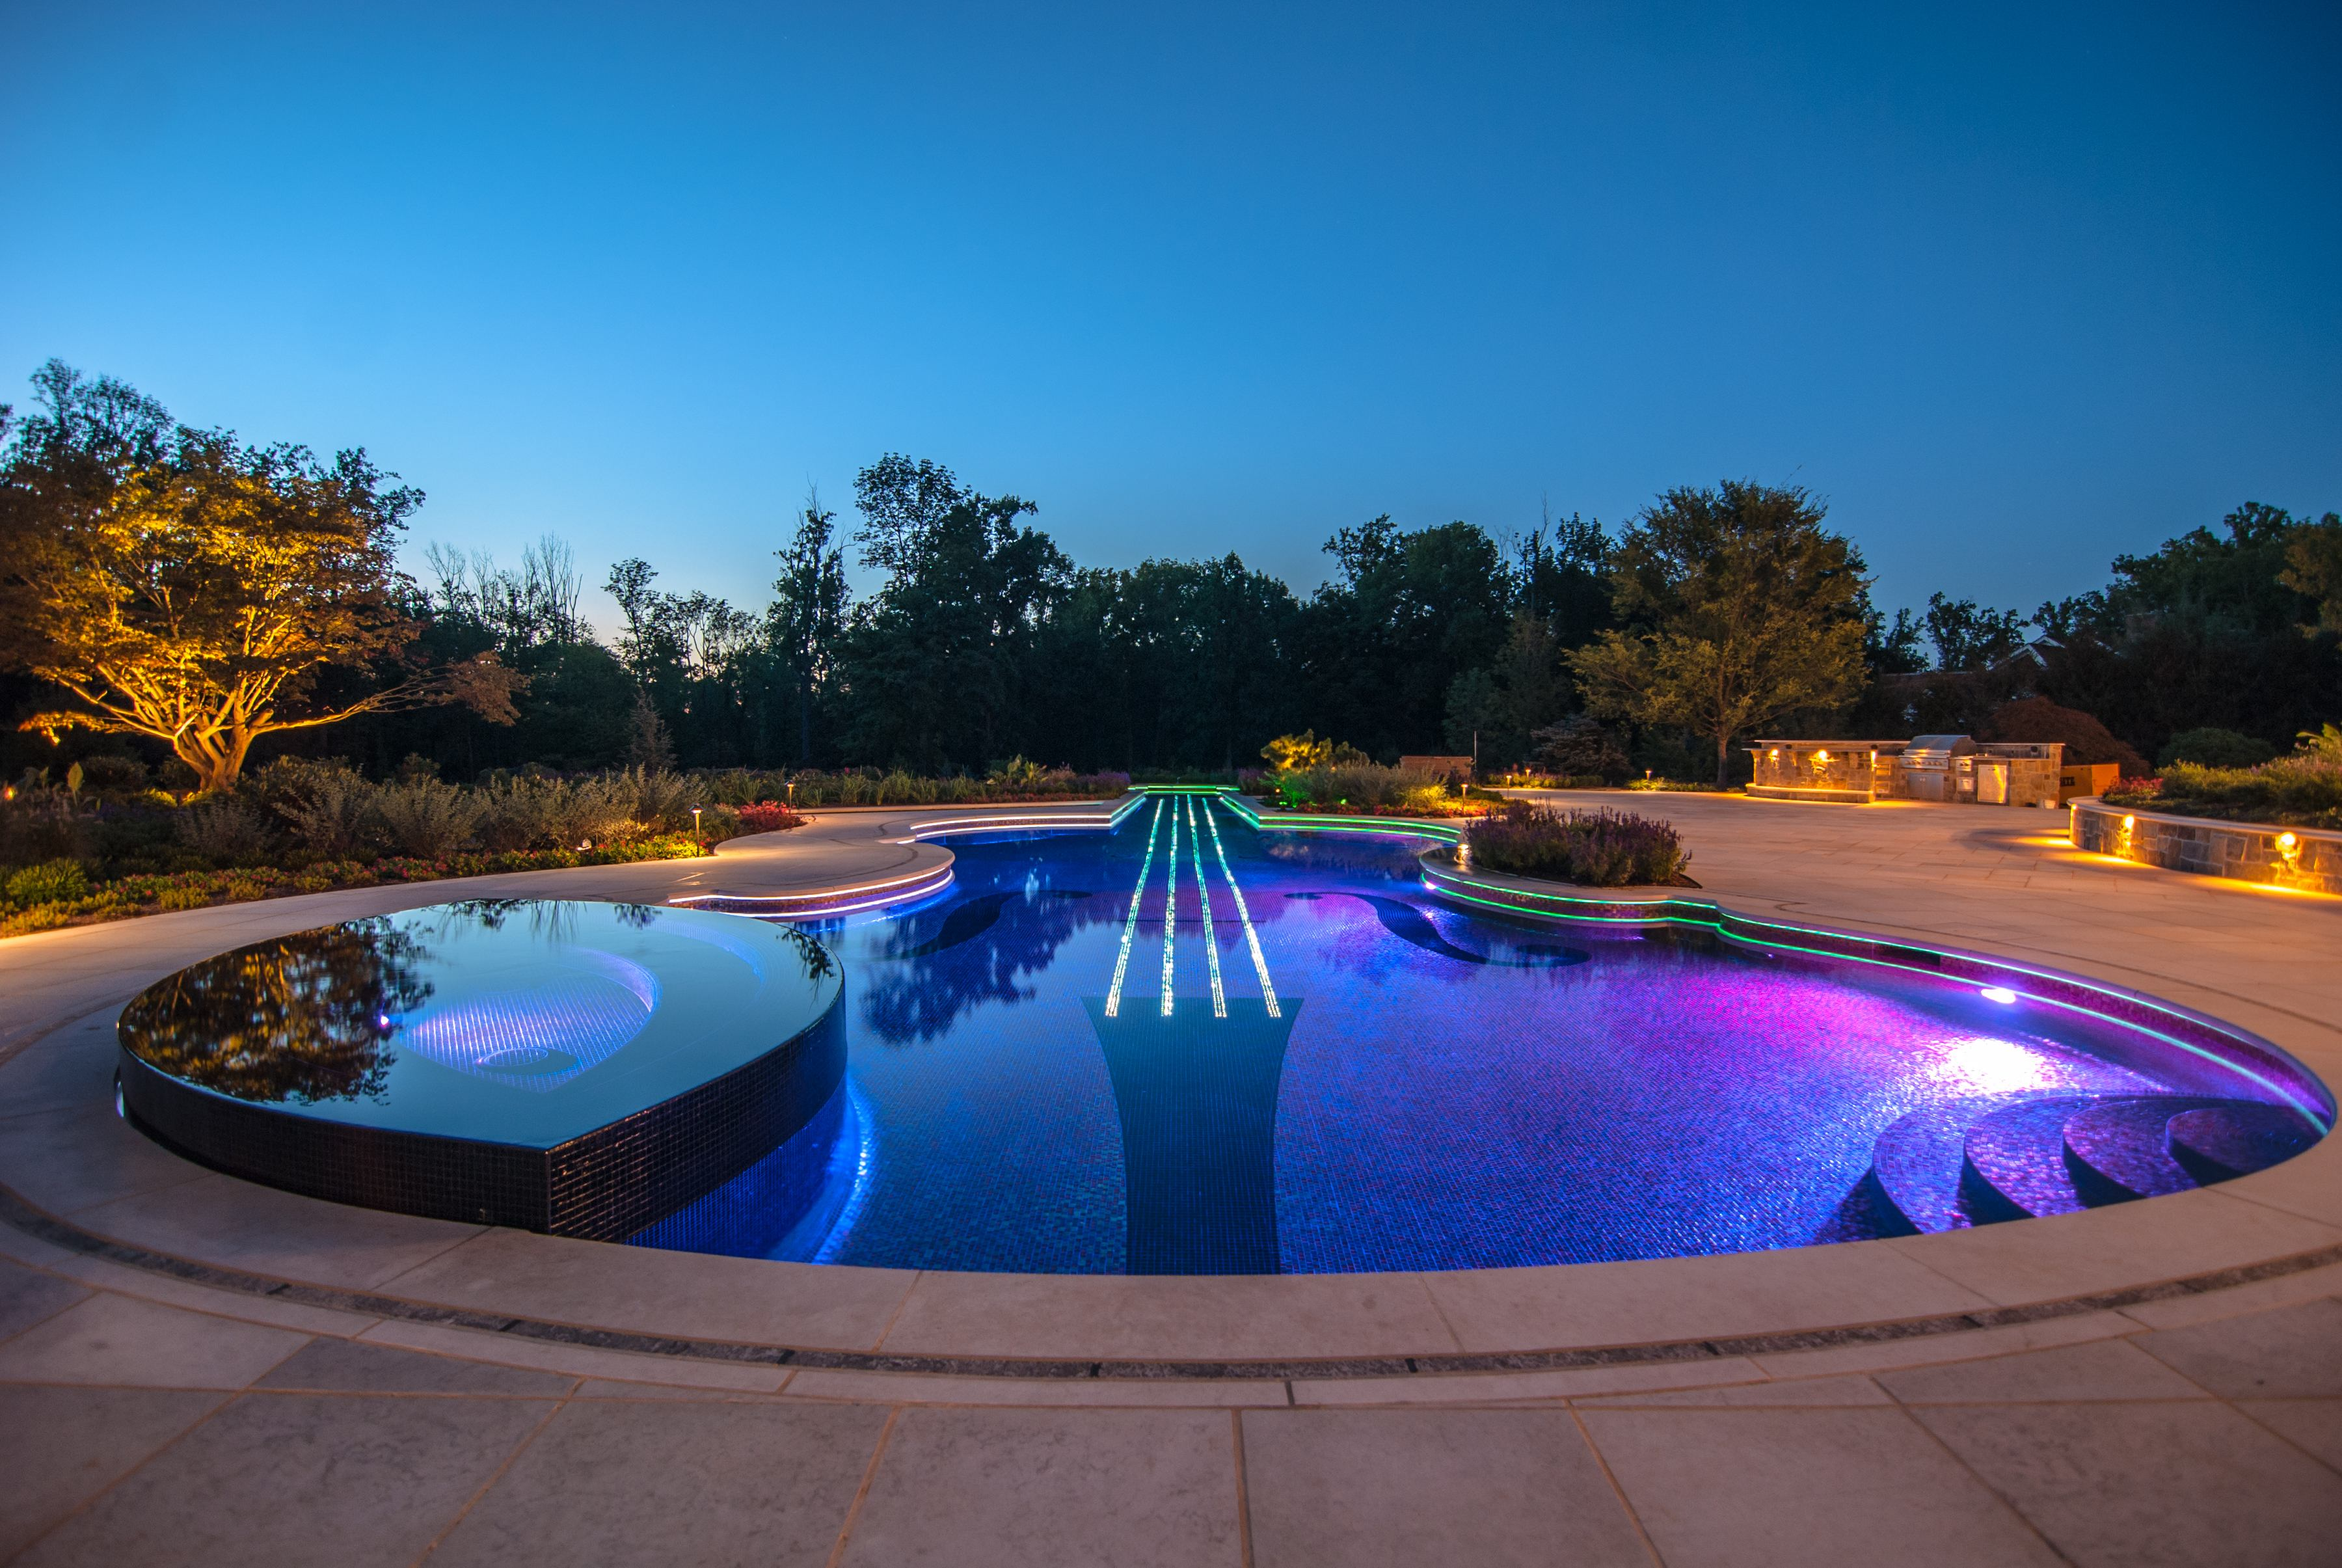 Nj luxury inground swimming pool co in new diy tv show for Pool show new jersey